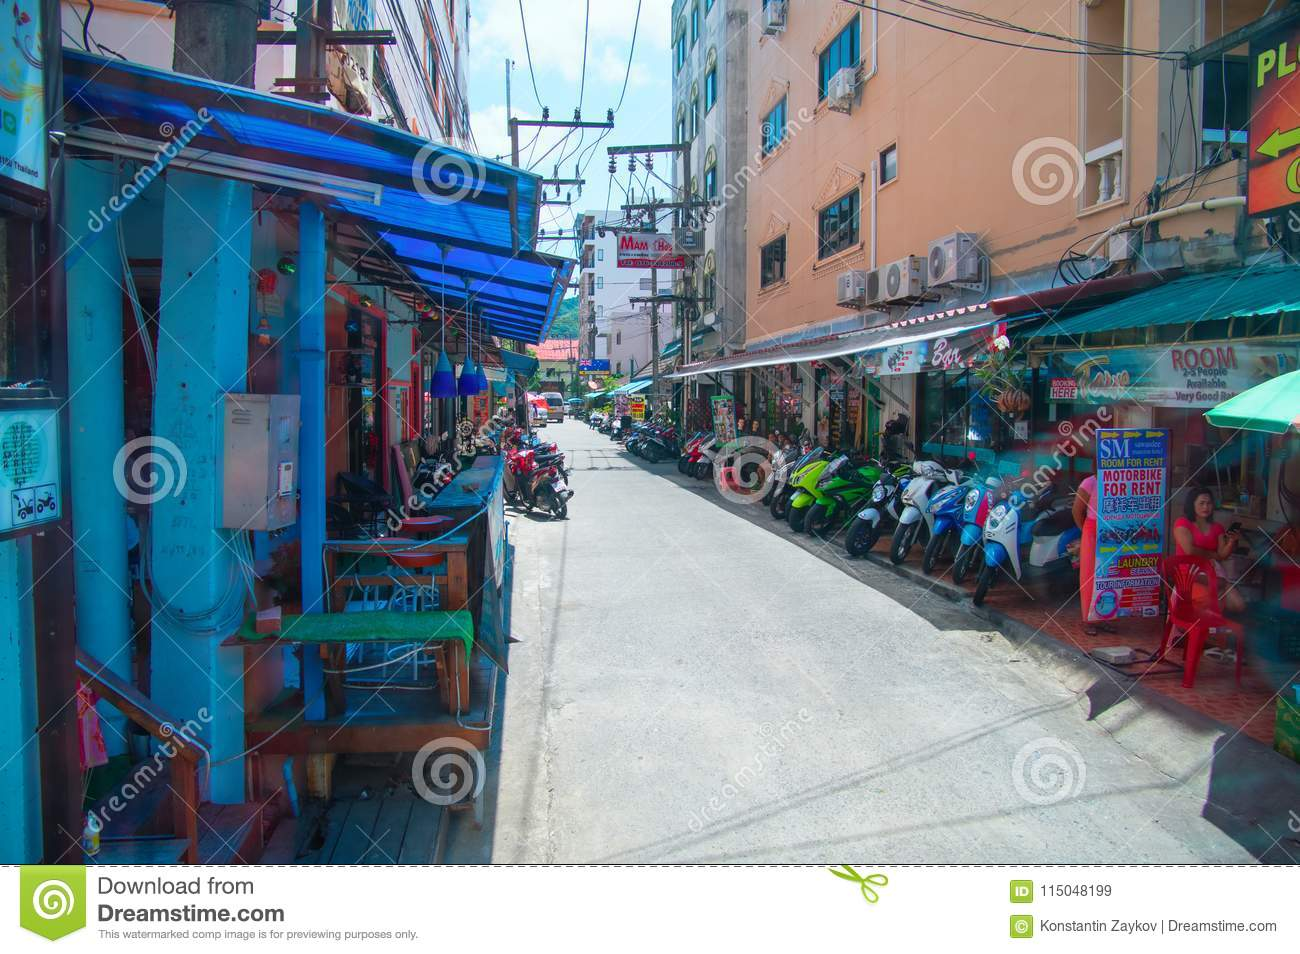 thailand, phuket, march 23, 2018-street in phuket with shops on the